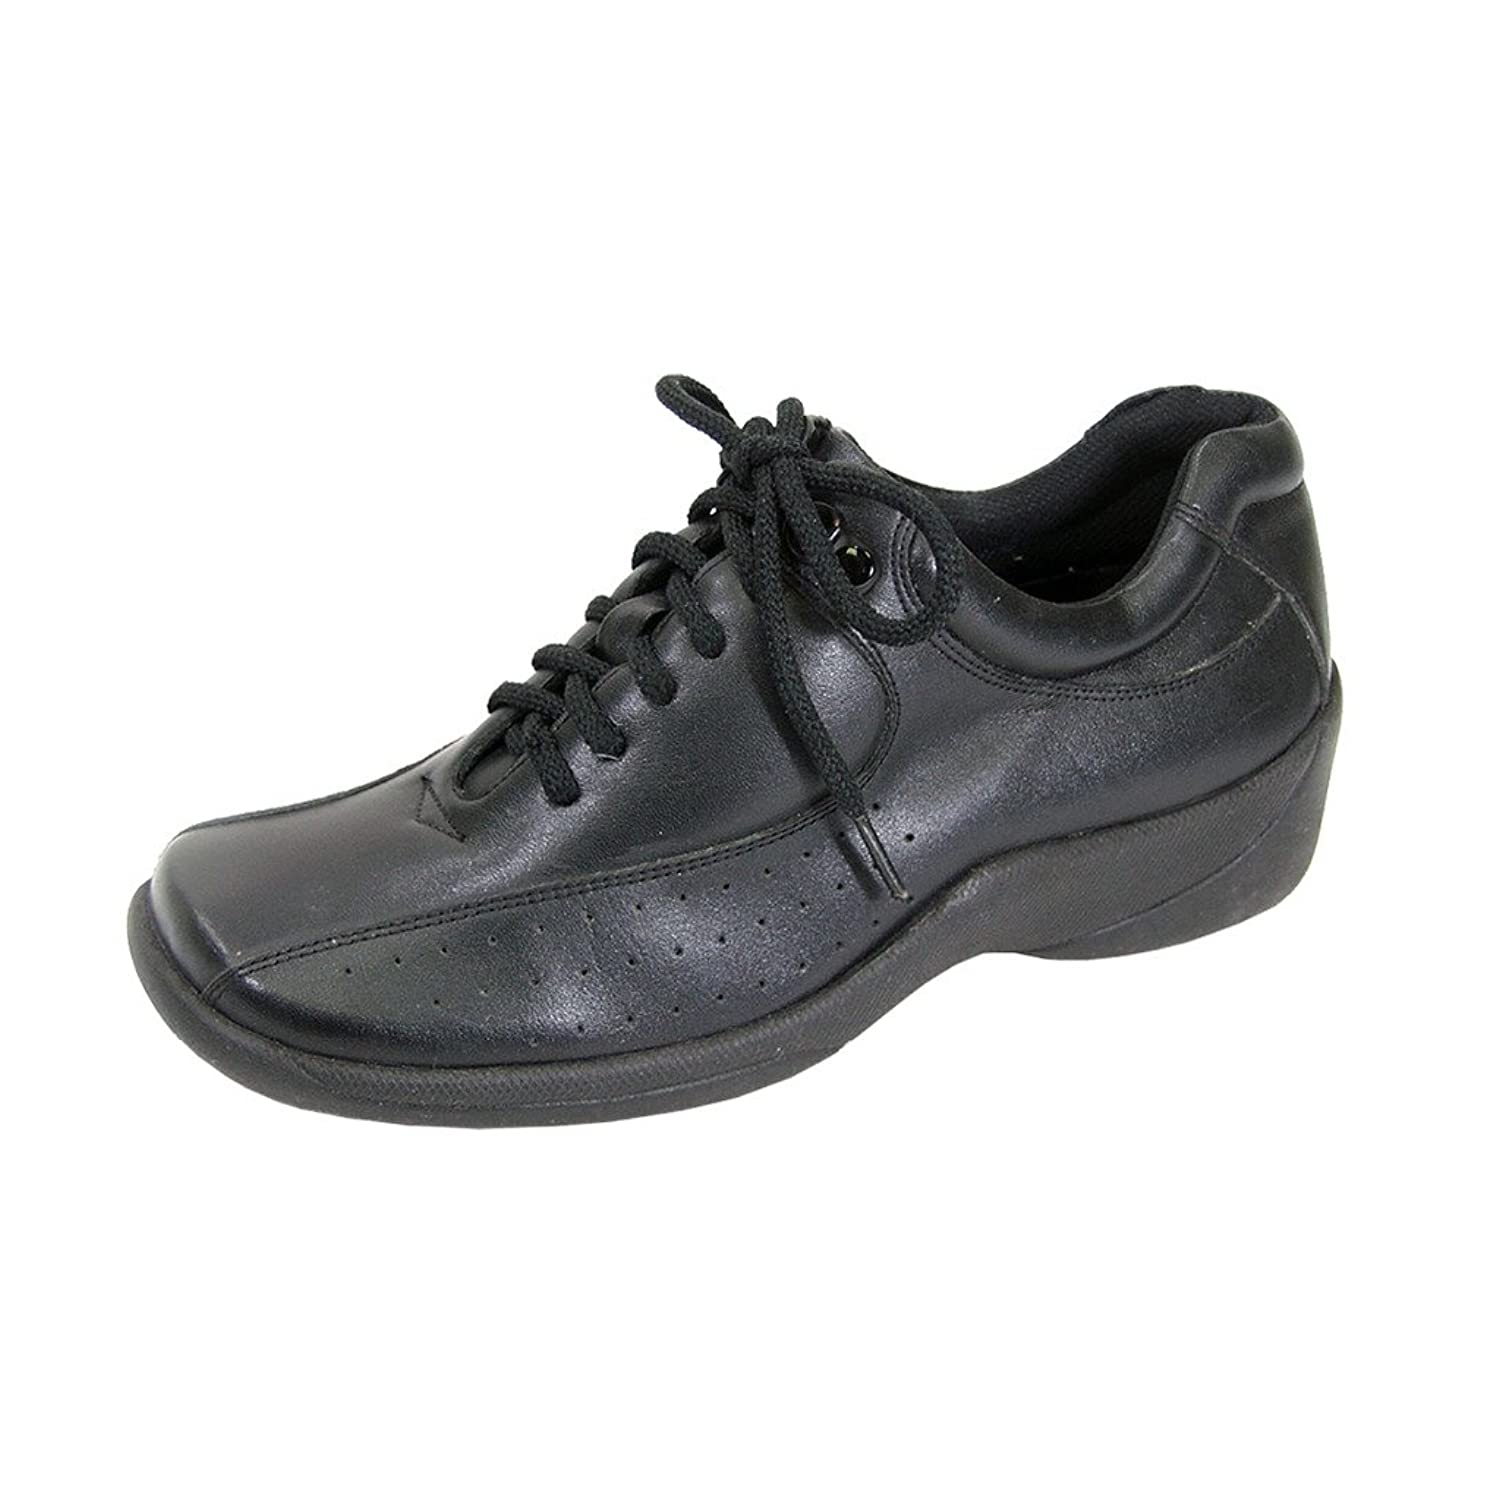 24 Hour Comfort FIC Gina Women Wide Width Light-Weight Leather Lace Up Shoes (Size/Measurement Guide)